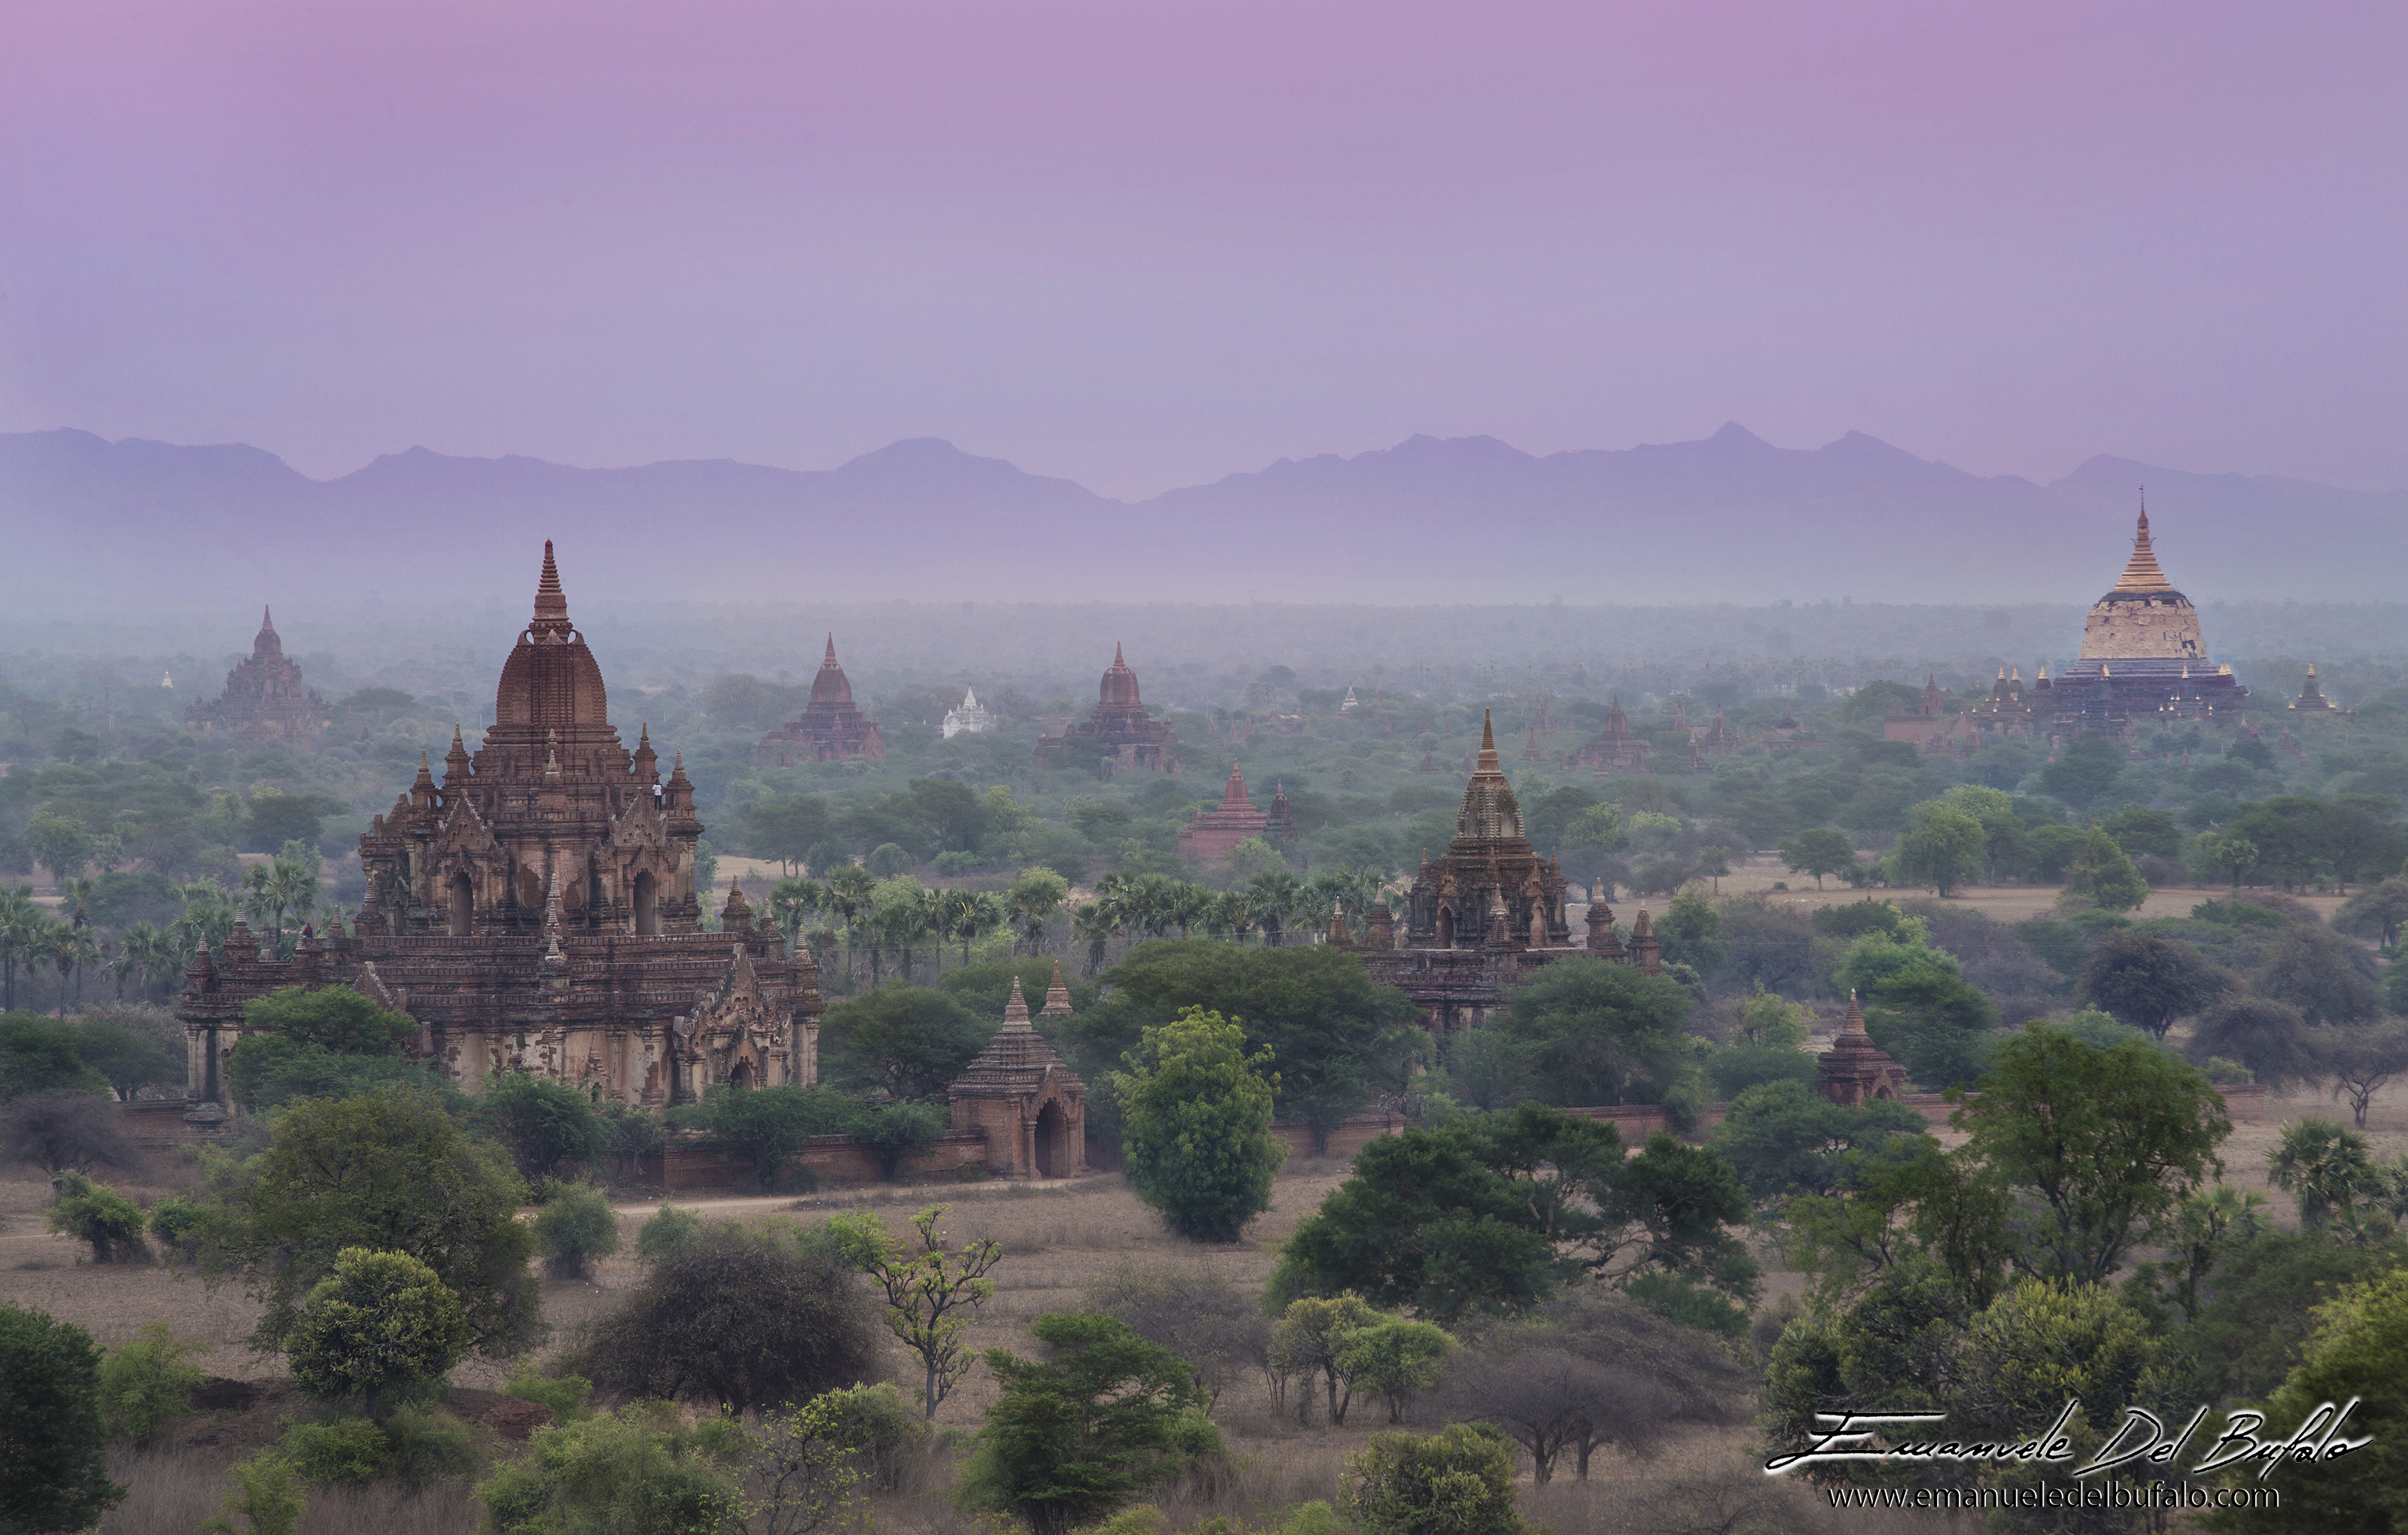 www.emanueledelbufalo.com #myanmar #burma #bagan #temple #sunrise #pagoda #the_long_term_traveler